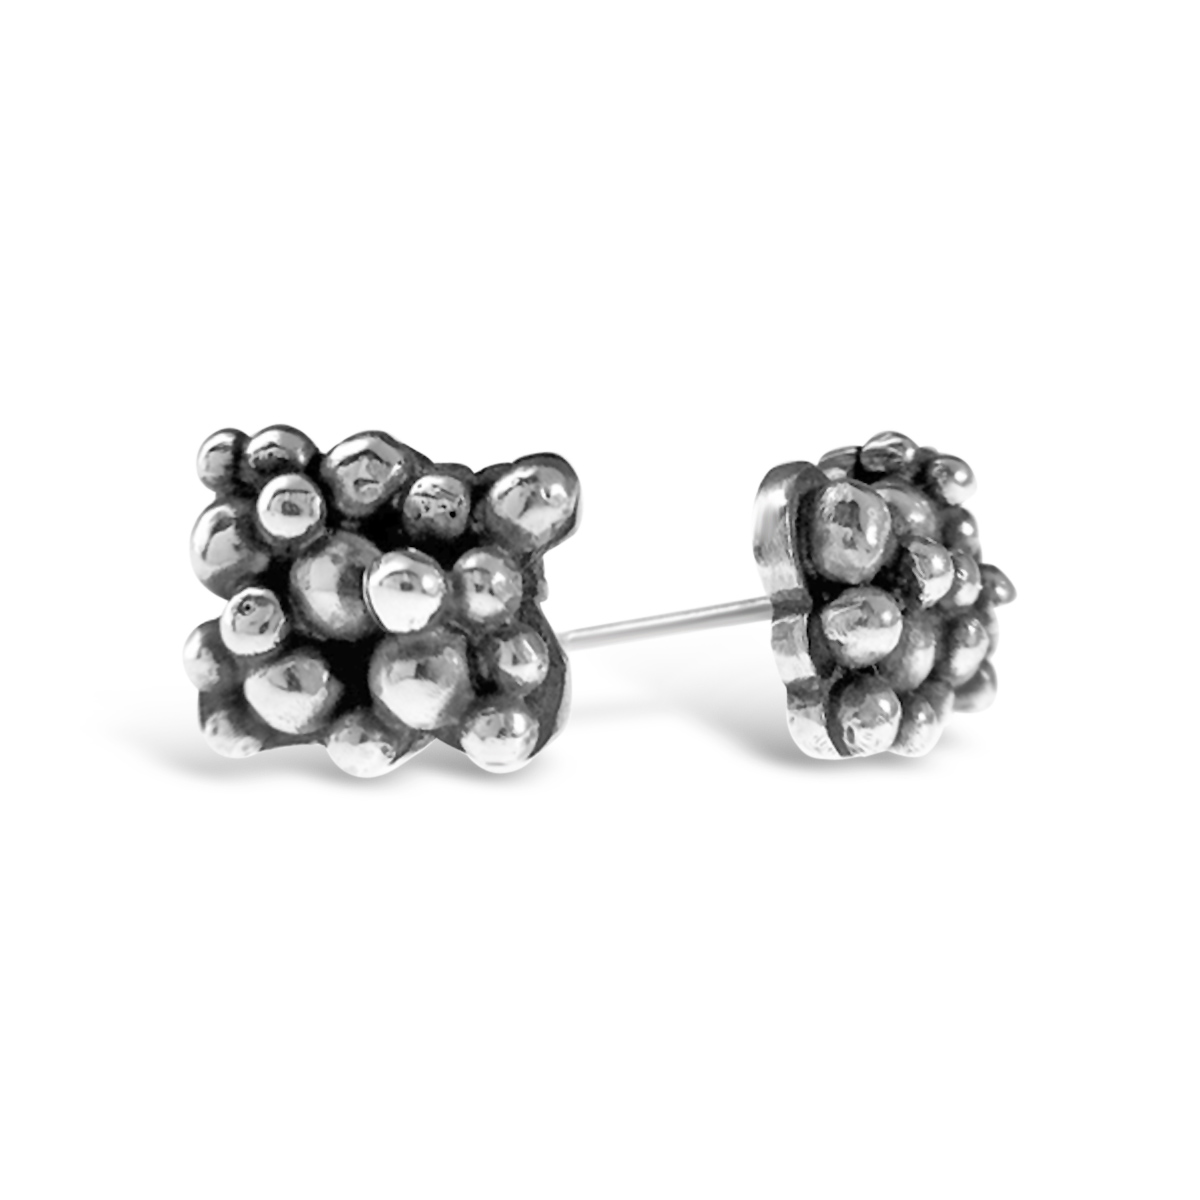 Molecule silver earrings